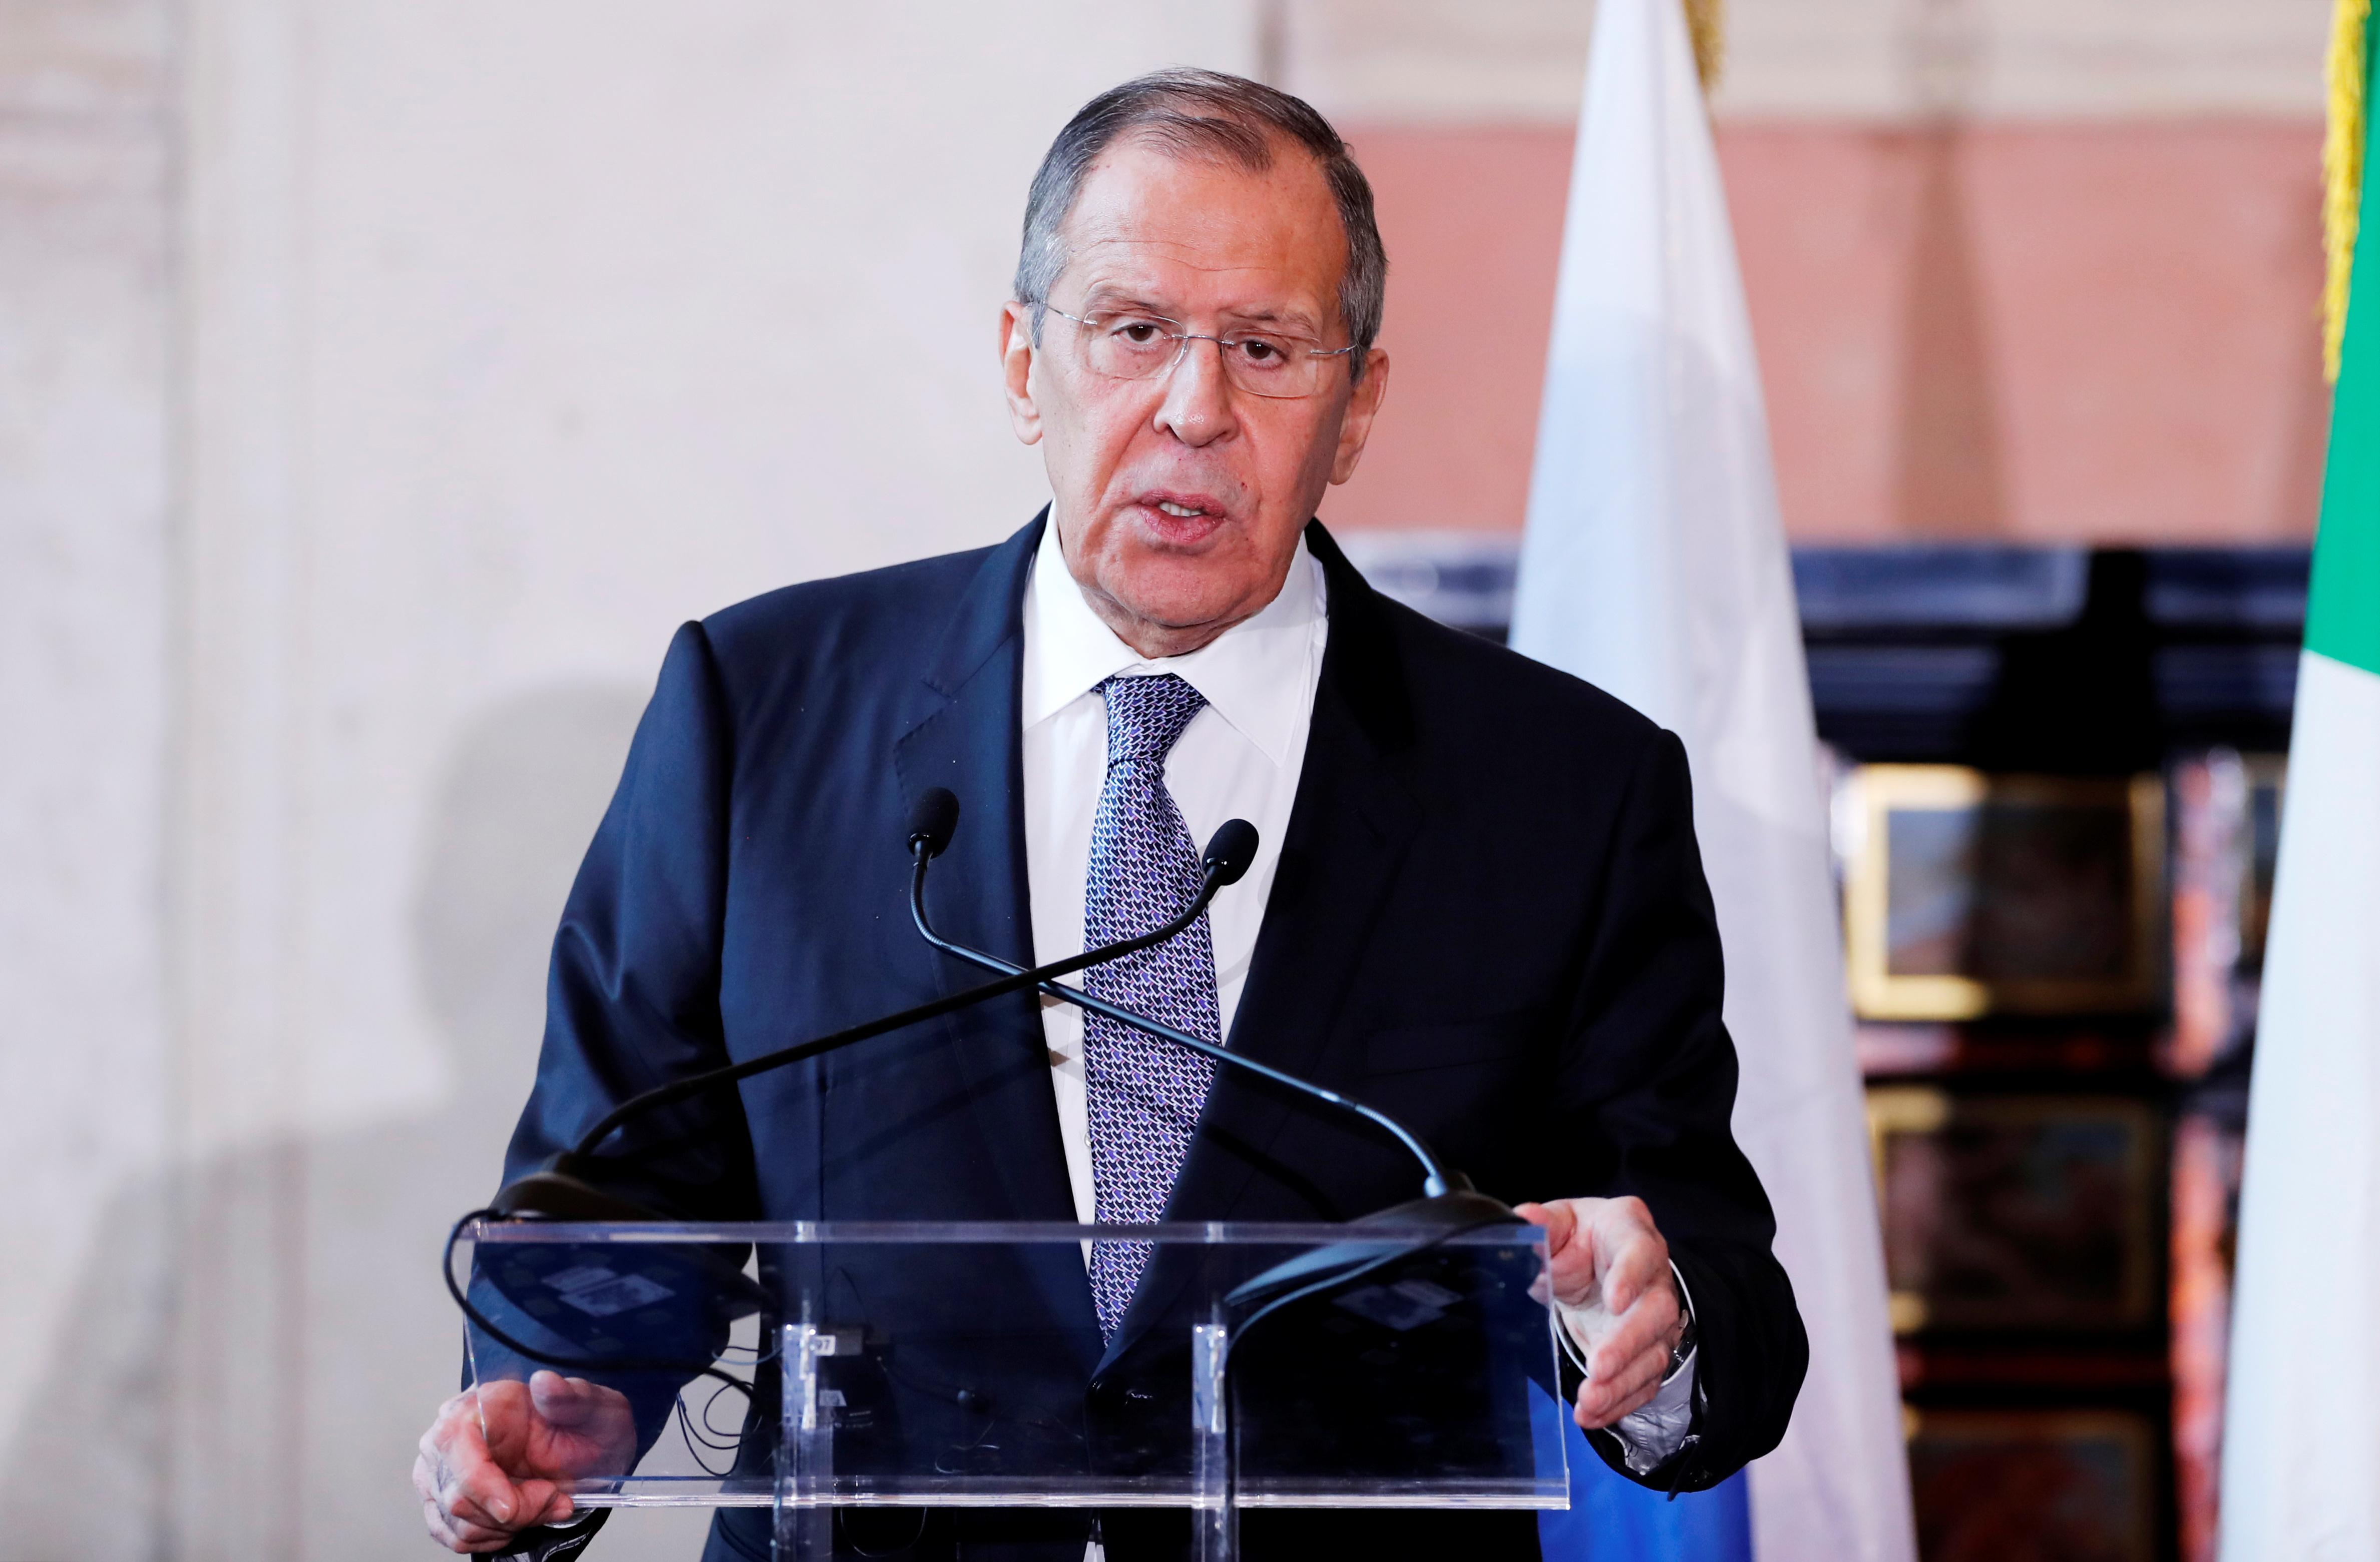 Russia says will respond to U.S. on missile deployment